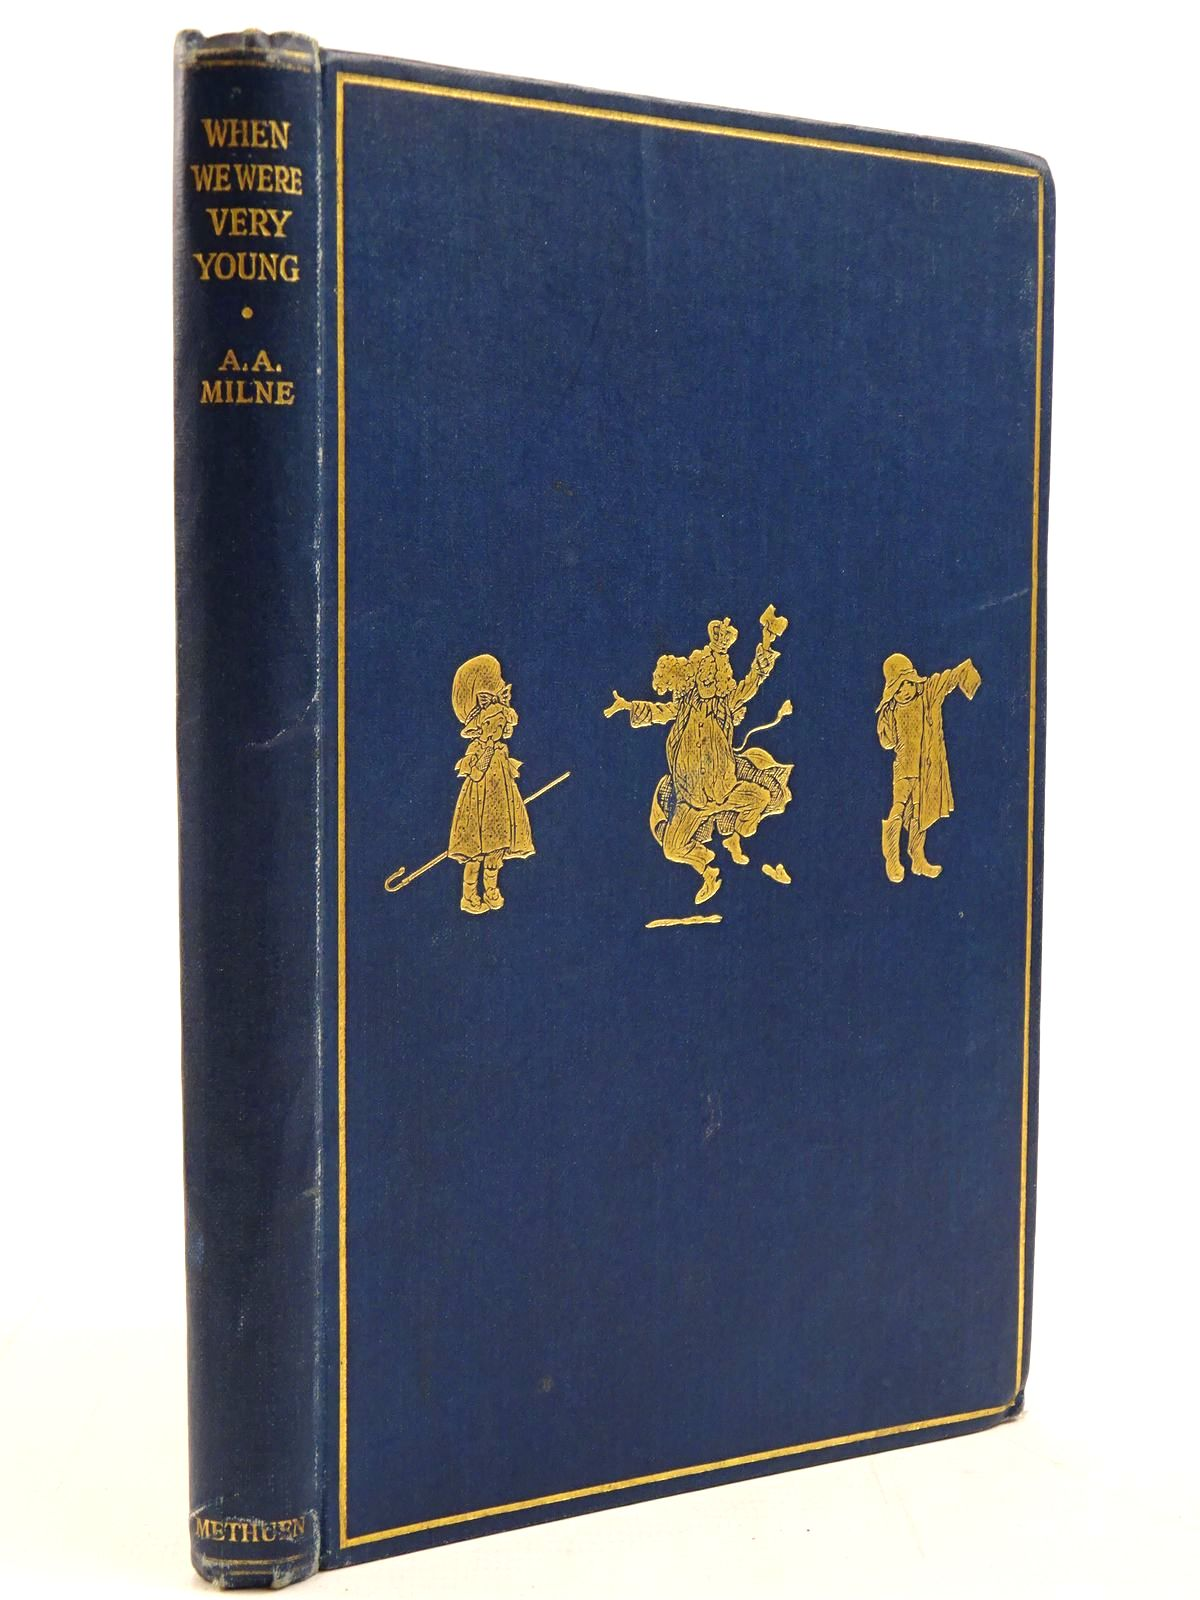 Photo of WHEN WE WERE VERY YOUNG written by Milne, A.A. illustrated by Shepard, E.H. published by Methuen & Co. Ltd. (STOCK CODE: 2130918)  for sale by Stella & Rose's Books